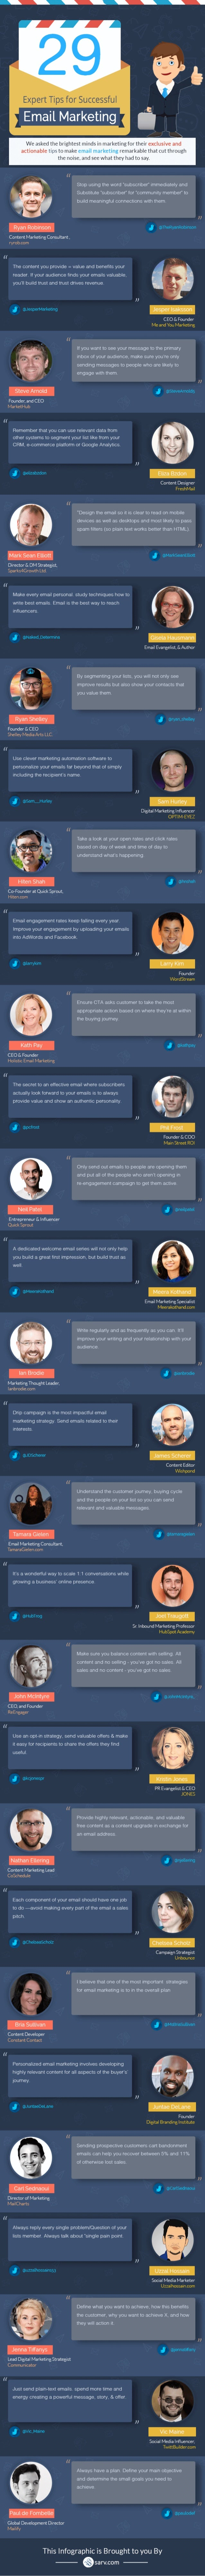 29 Expert Tips to Make Your Email Marketing Successful